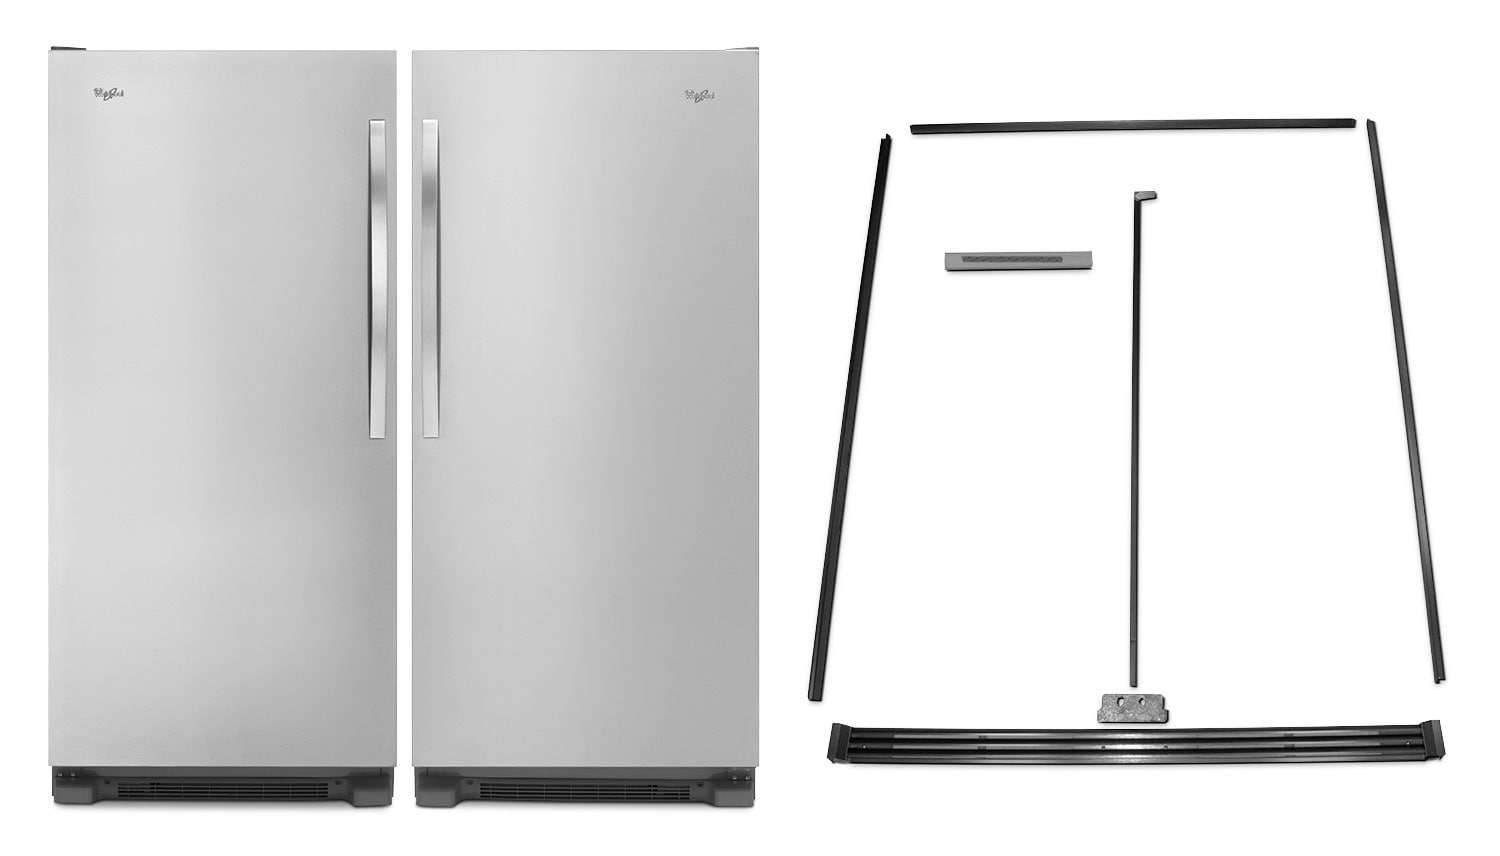 Whirlpool SideKicks® 18 Cu. Ft. All-Refrigerator, 18 Cu. Ft. All-Freezer and Trim Kit